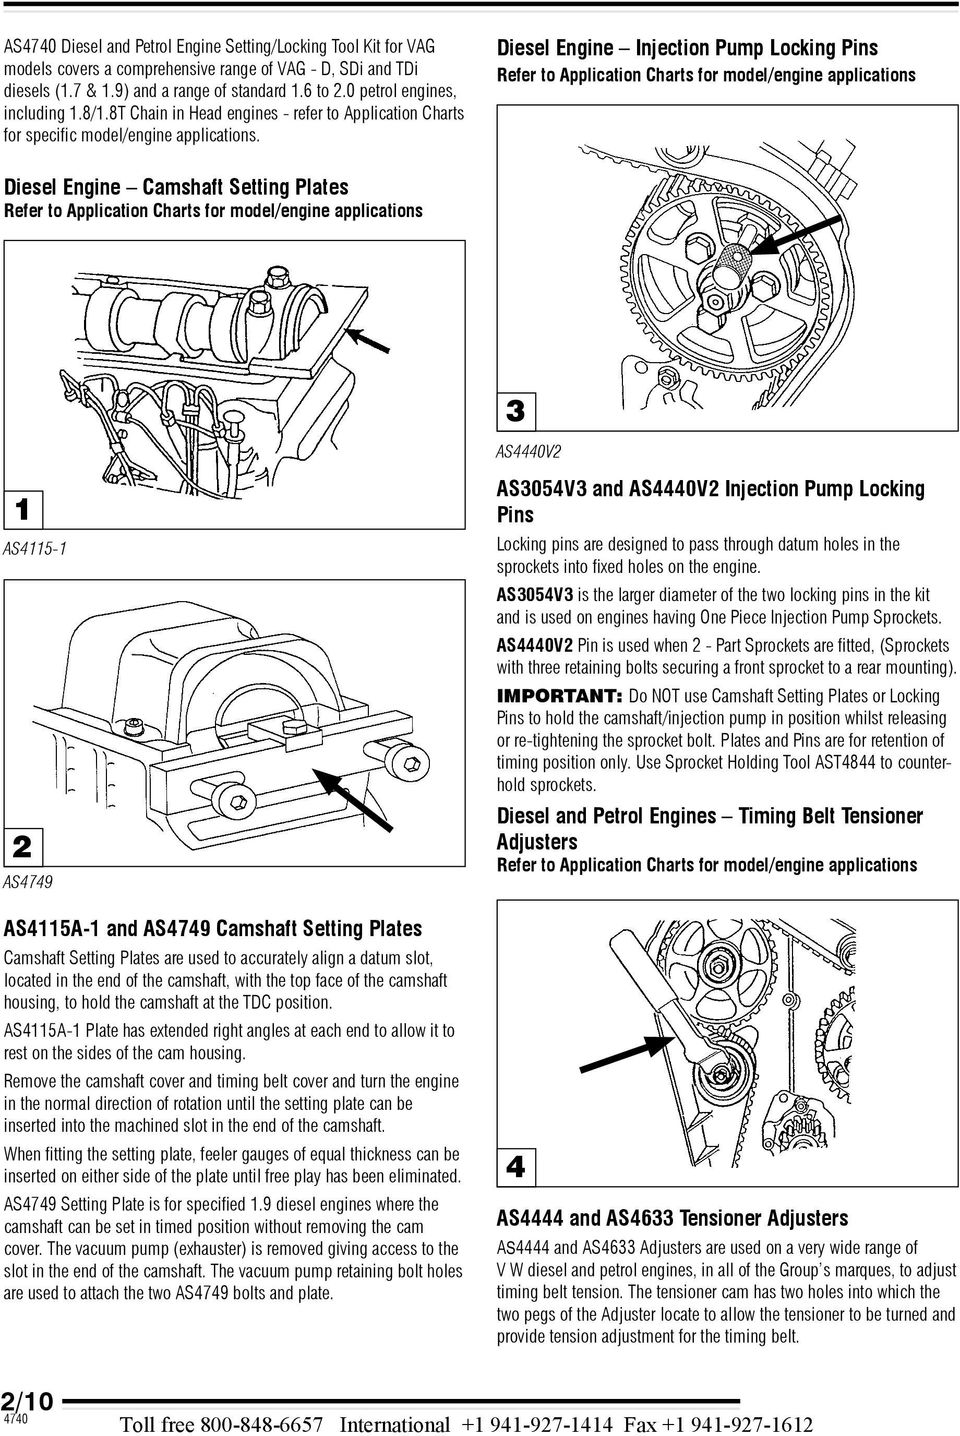 hight resolution of diese engine injection pump locking pins refer to appication charts for mode engine appications diese